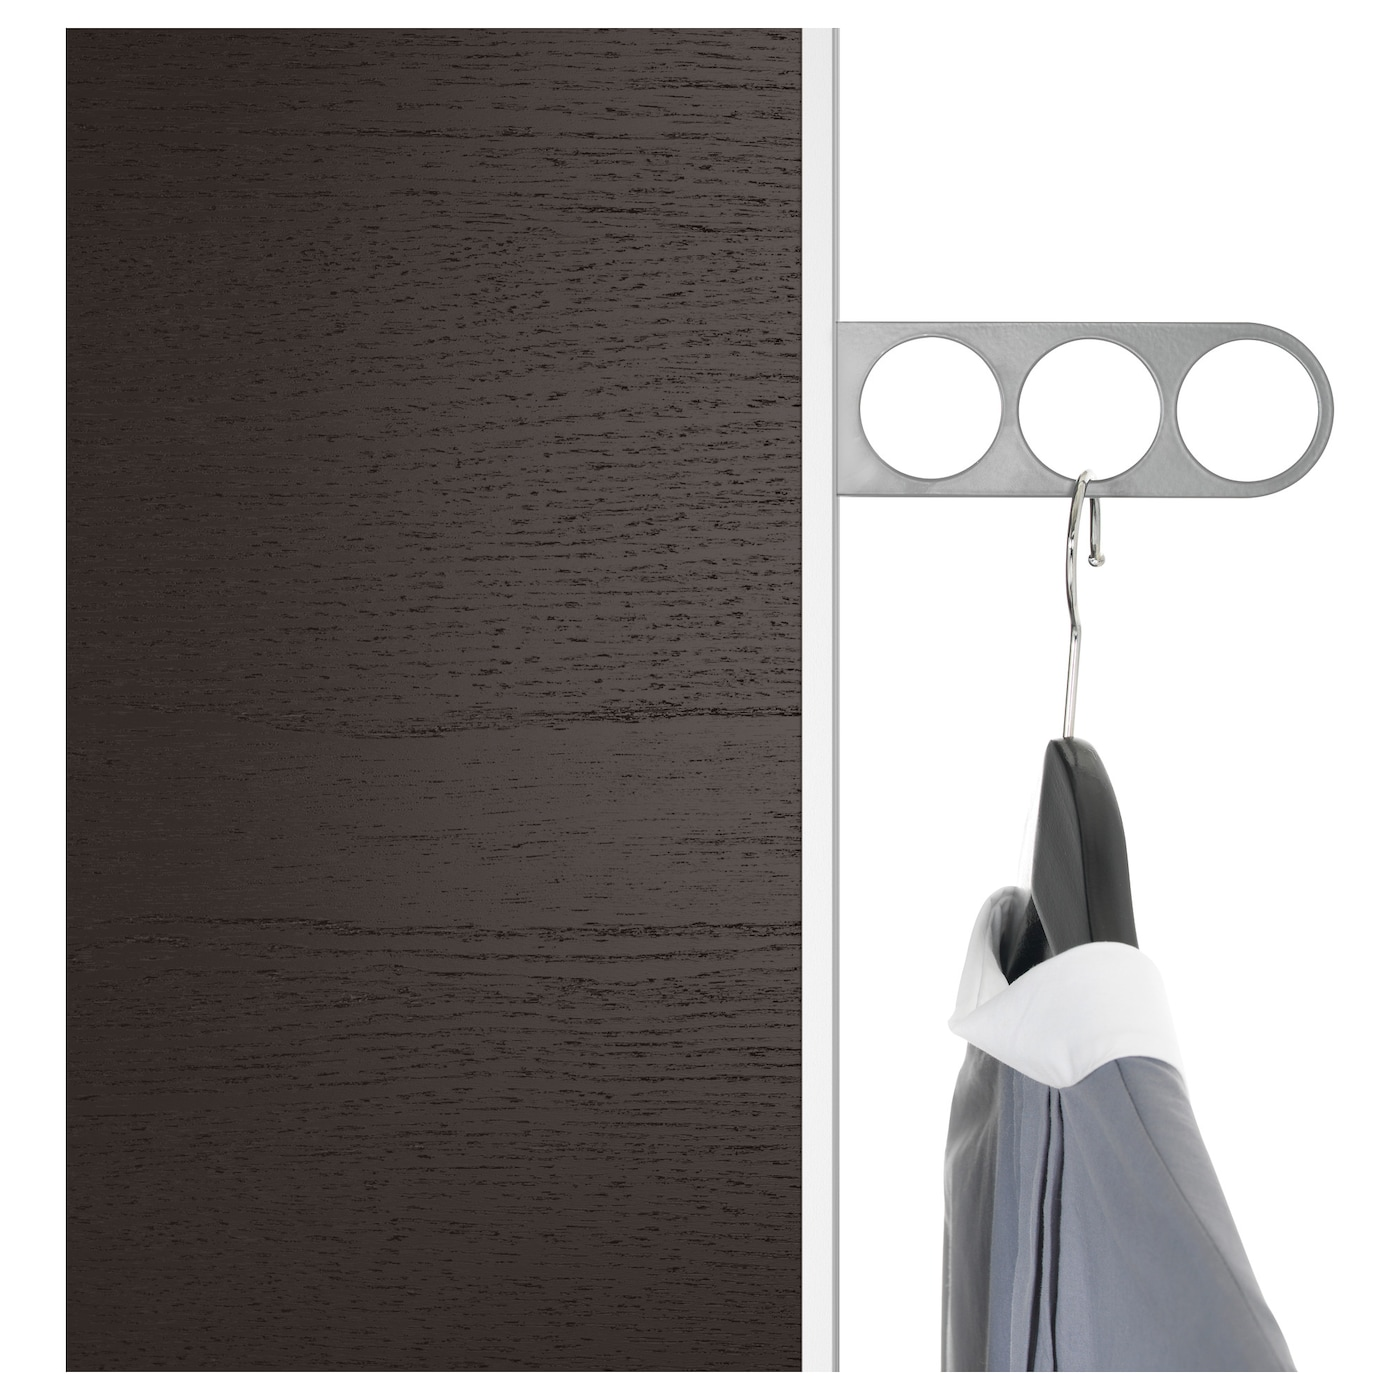 IKEA KOMPLEMENT valet hanger 10 year guarantee. Read about the terms in the guarantee brochure.